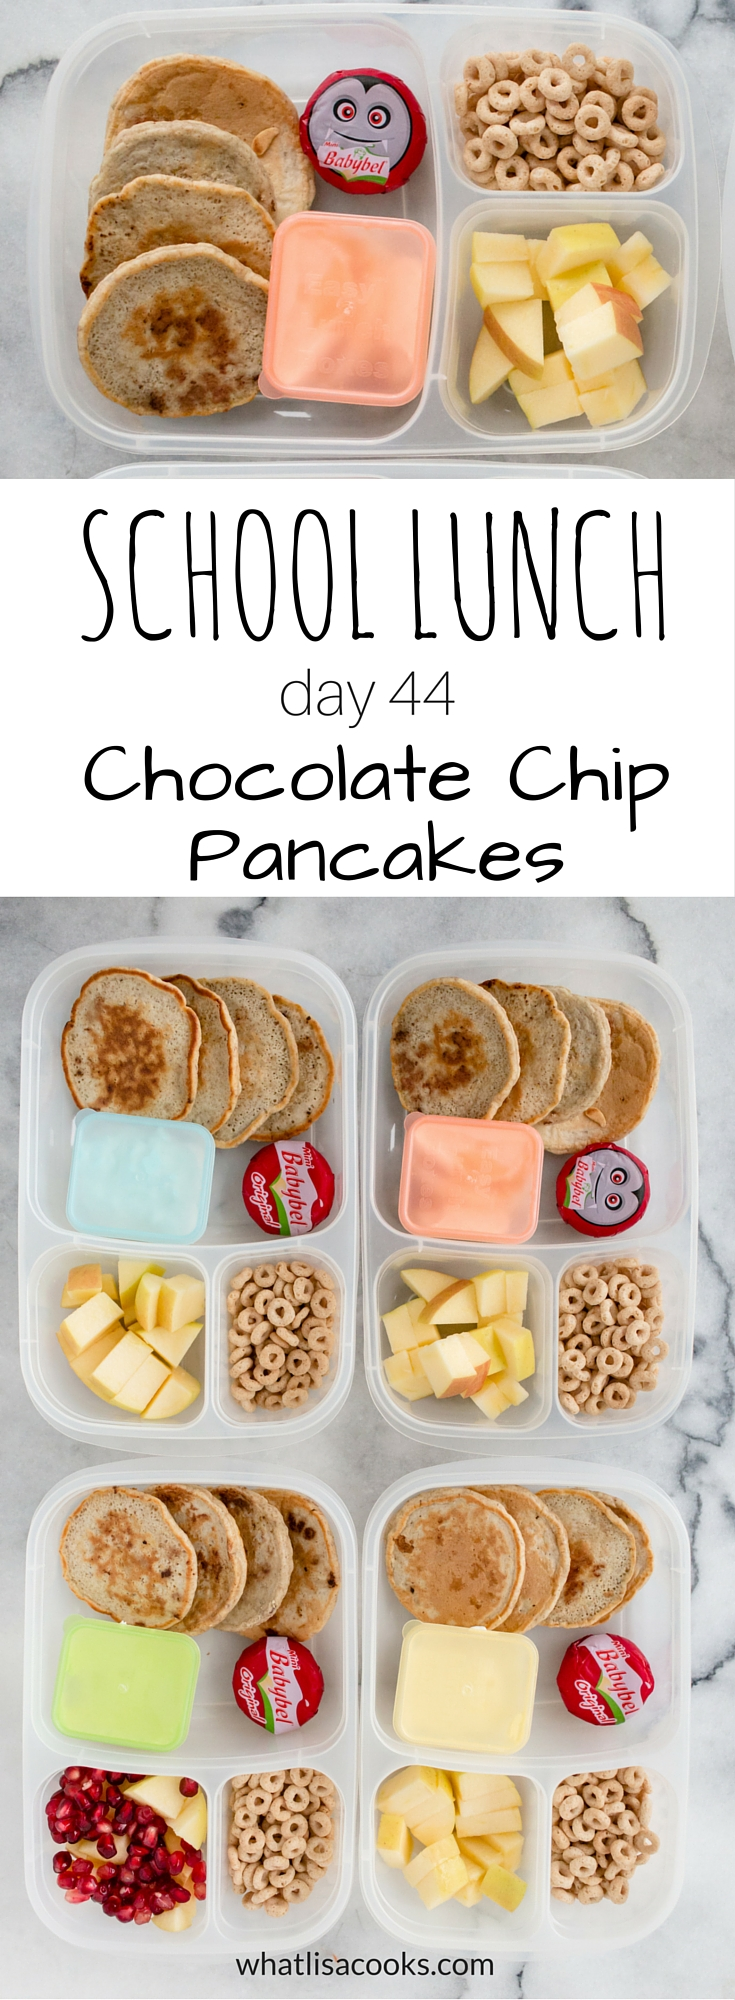 Chocolate chip pancakes for lunch?  It's breakfast for school lunch. Easy school lunch packing from WhatLisaCooks.com